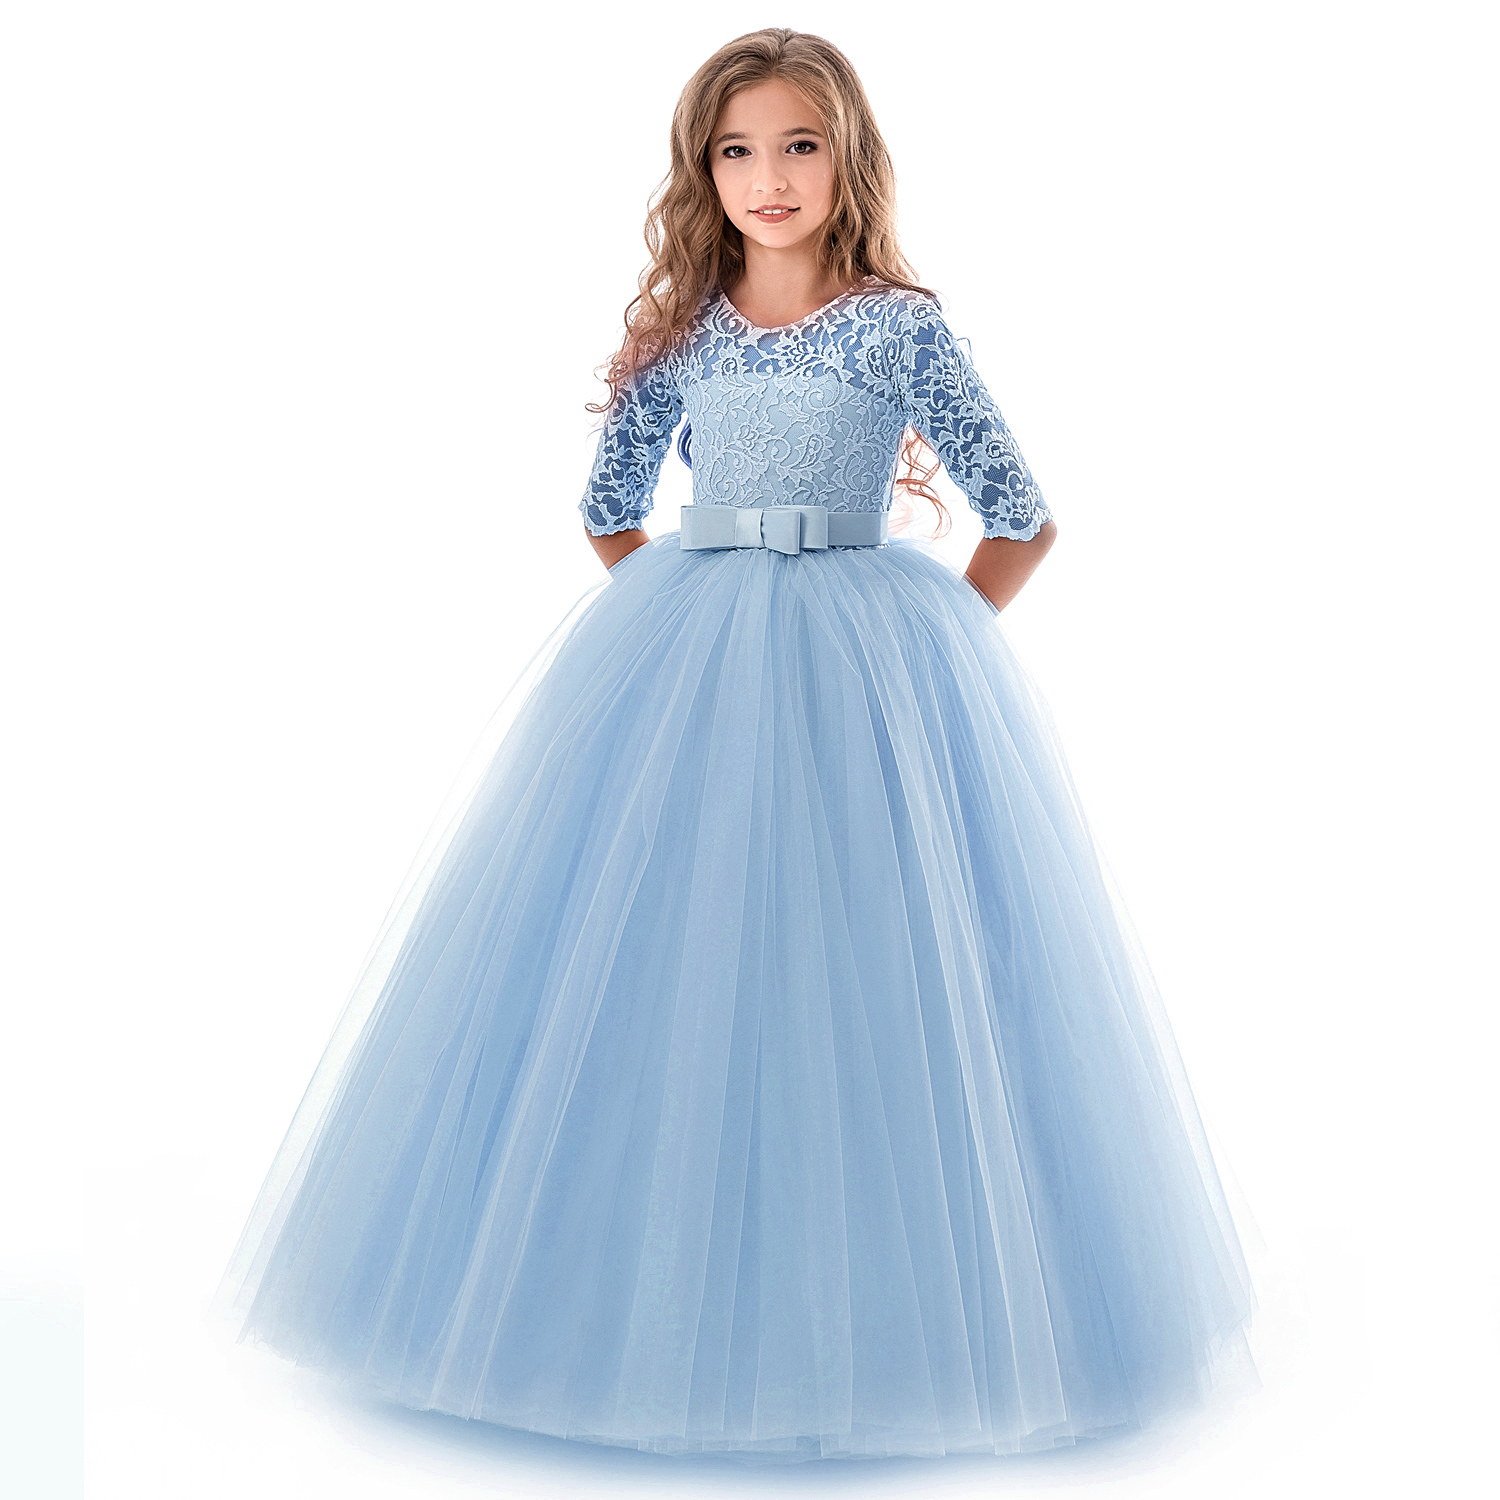 Girls Lace Dress For Wedding Embroidery Party Dresses Evening Christmas Girl Ball Gown Princess Costume Children Vestido 6 14Y 4